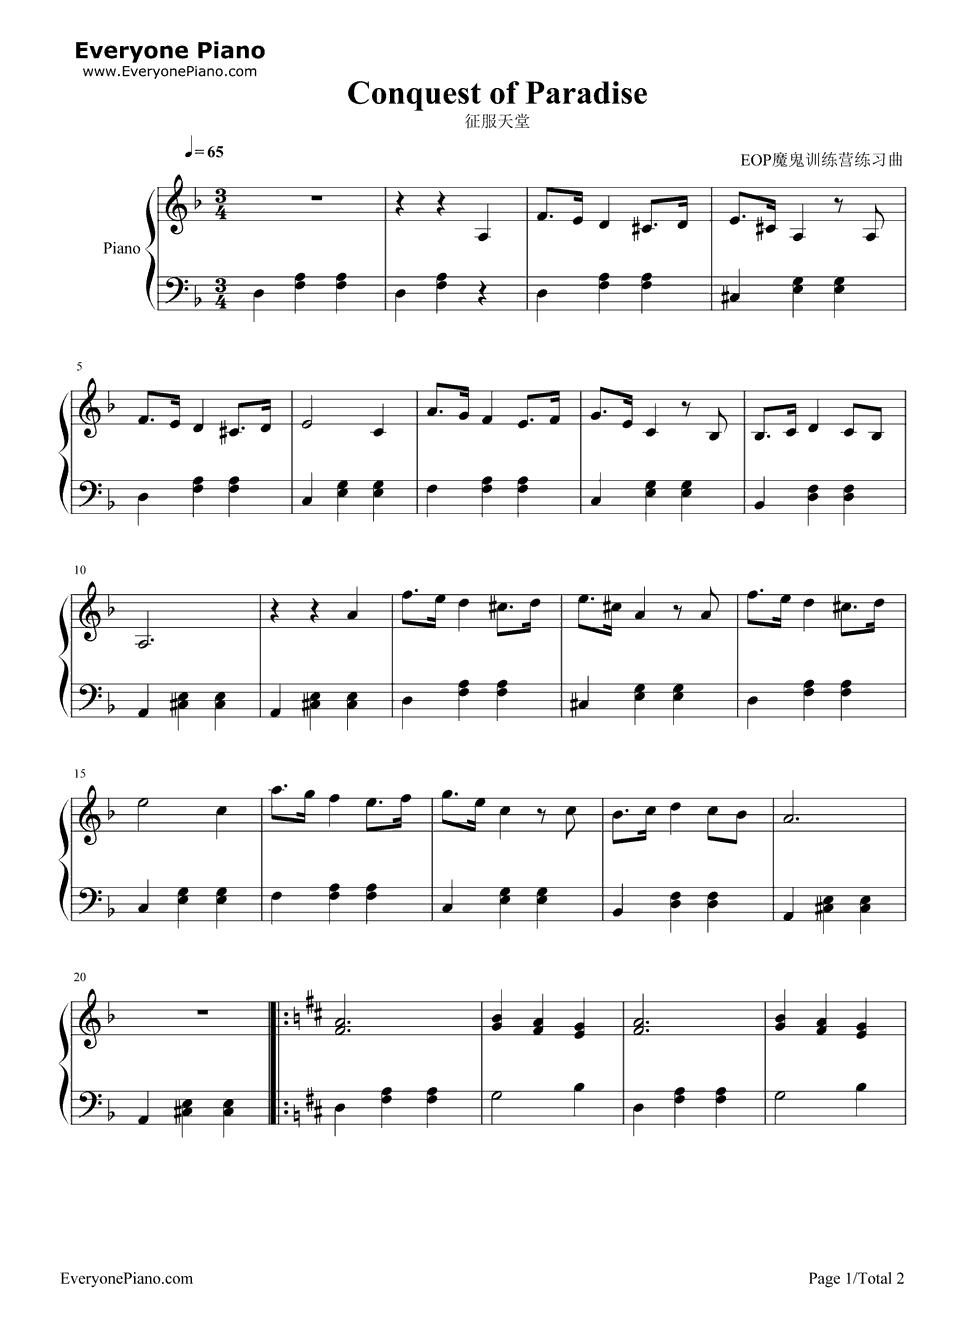 ... of Paradise Stave Preview 1-Free Piano Sheet Music & Piano Chords